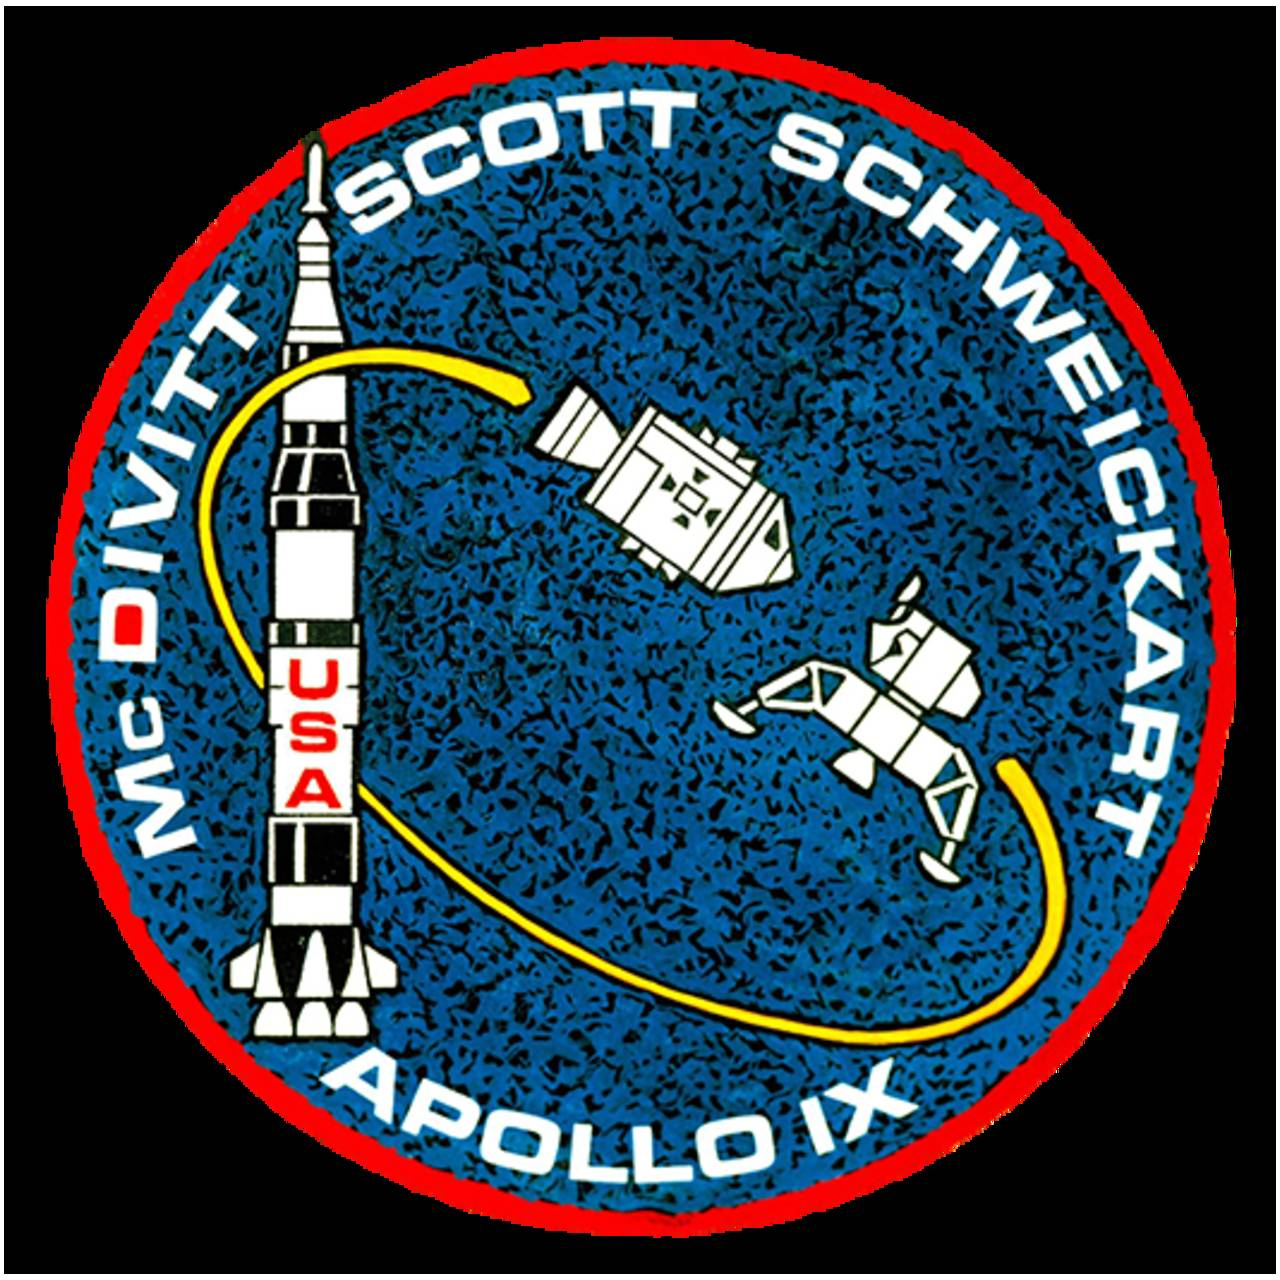 apollo9-patch_1560300881534.png